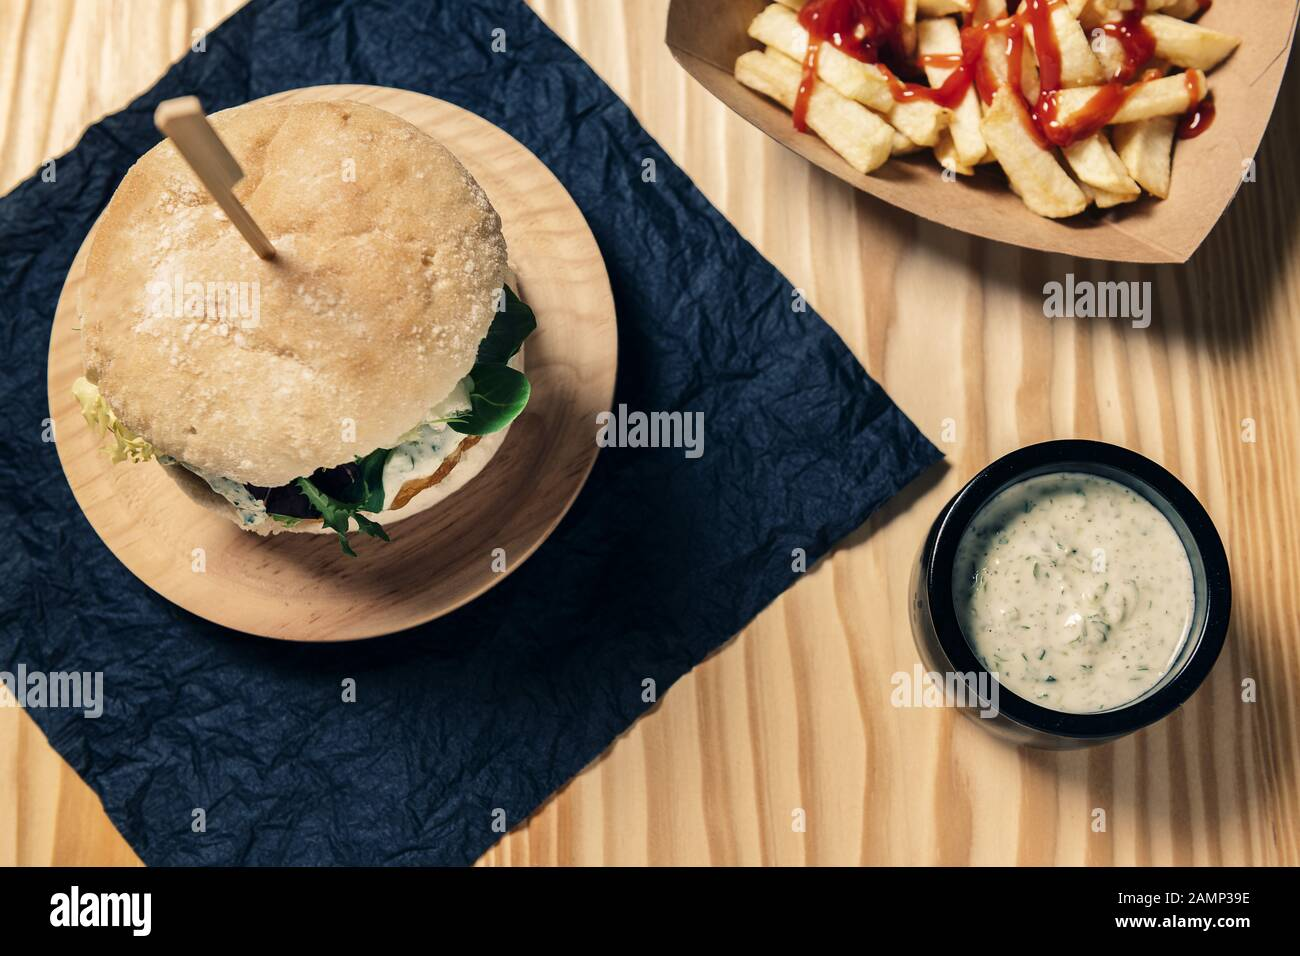 top view of a gourmet vegan burger on a wooden table with french fries with ketchup in a cardboard tray and a jar with sauce, healthy food and foodie Stock Photo